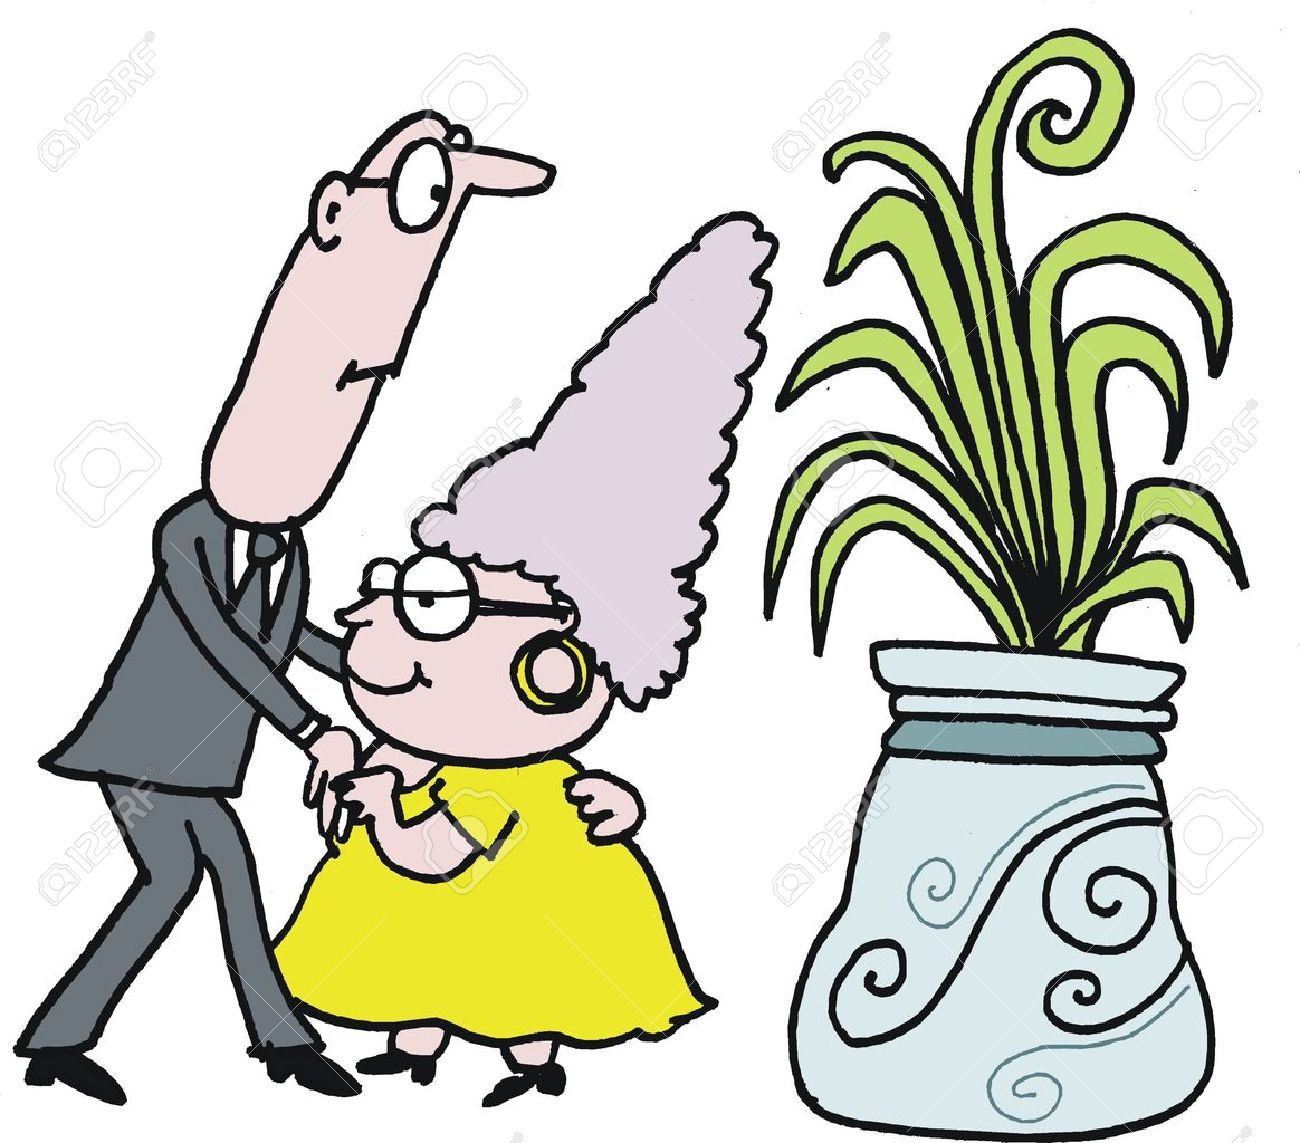 Mature Age Dancing Couple Vector Cartoon Royalty Free Cliparts.